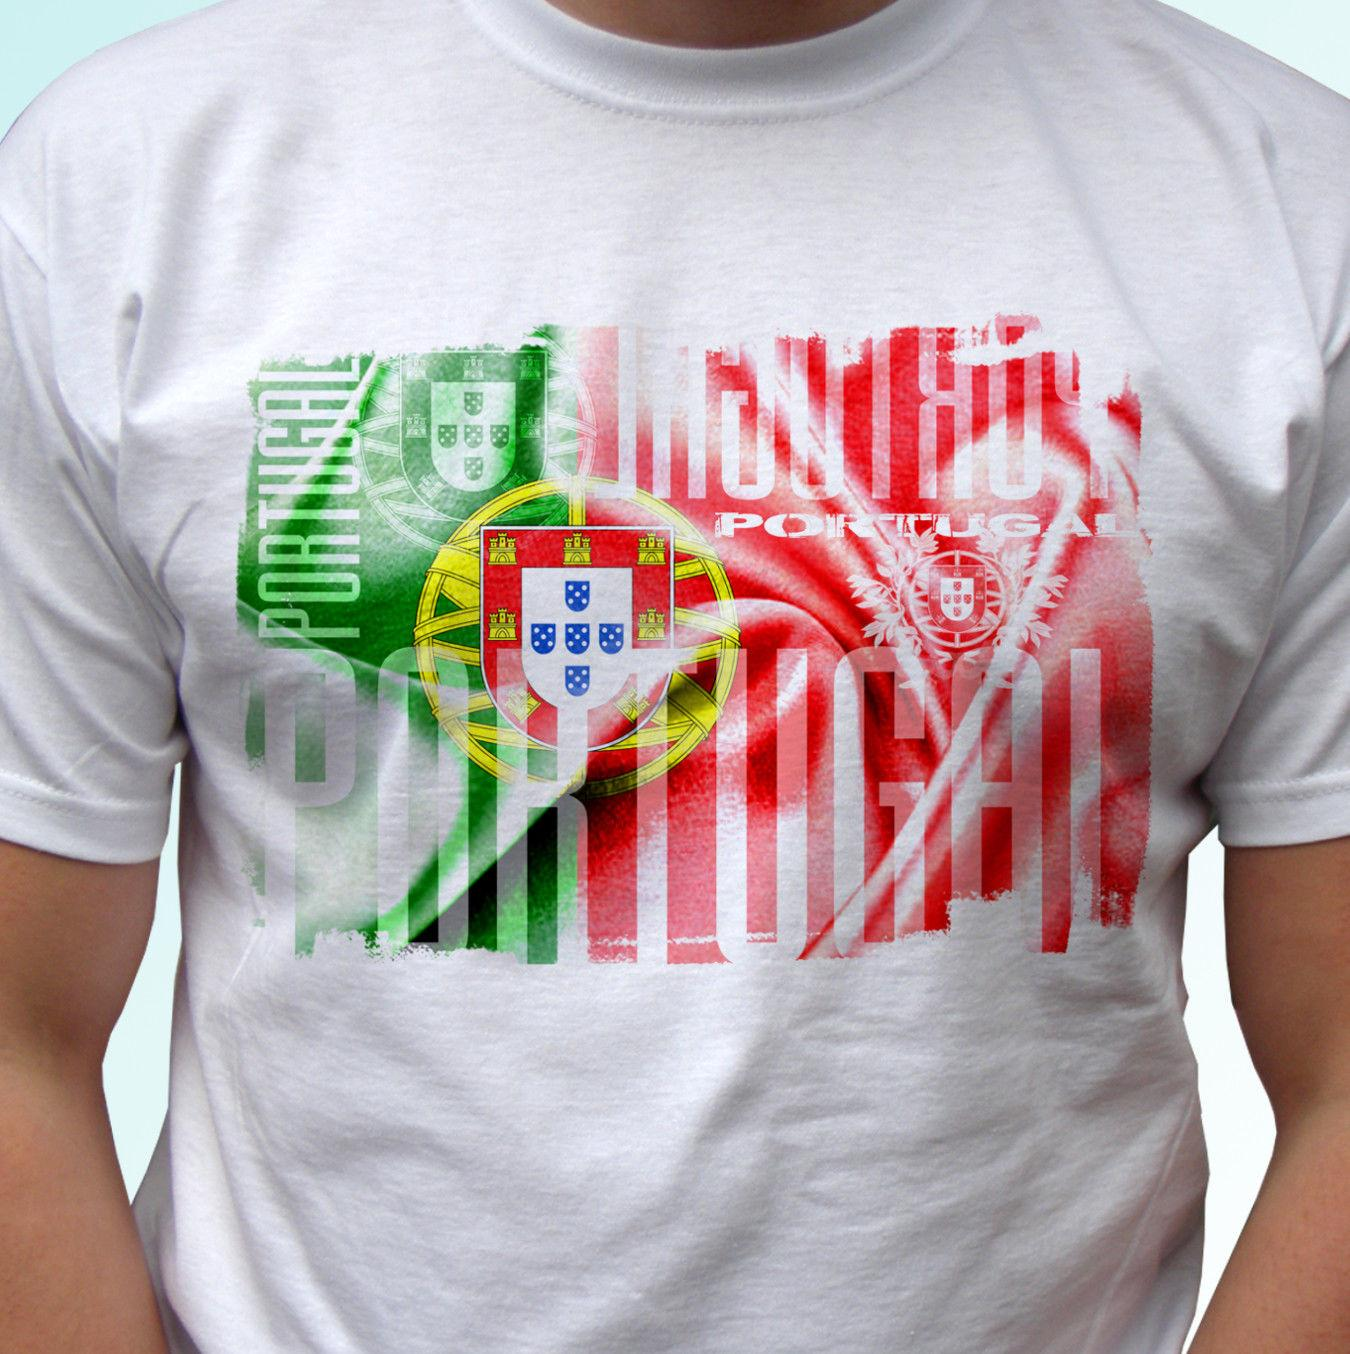 c6e612104aa62 Portugal Flag Design White T Shirt Top Modern Tee Mens Womens Kids Baby  Sizes Funny Unisex Casual Funny Graphic T Shirts Funny T Shirts For Sale  From ...